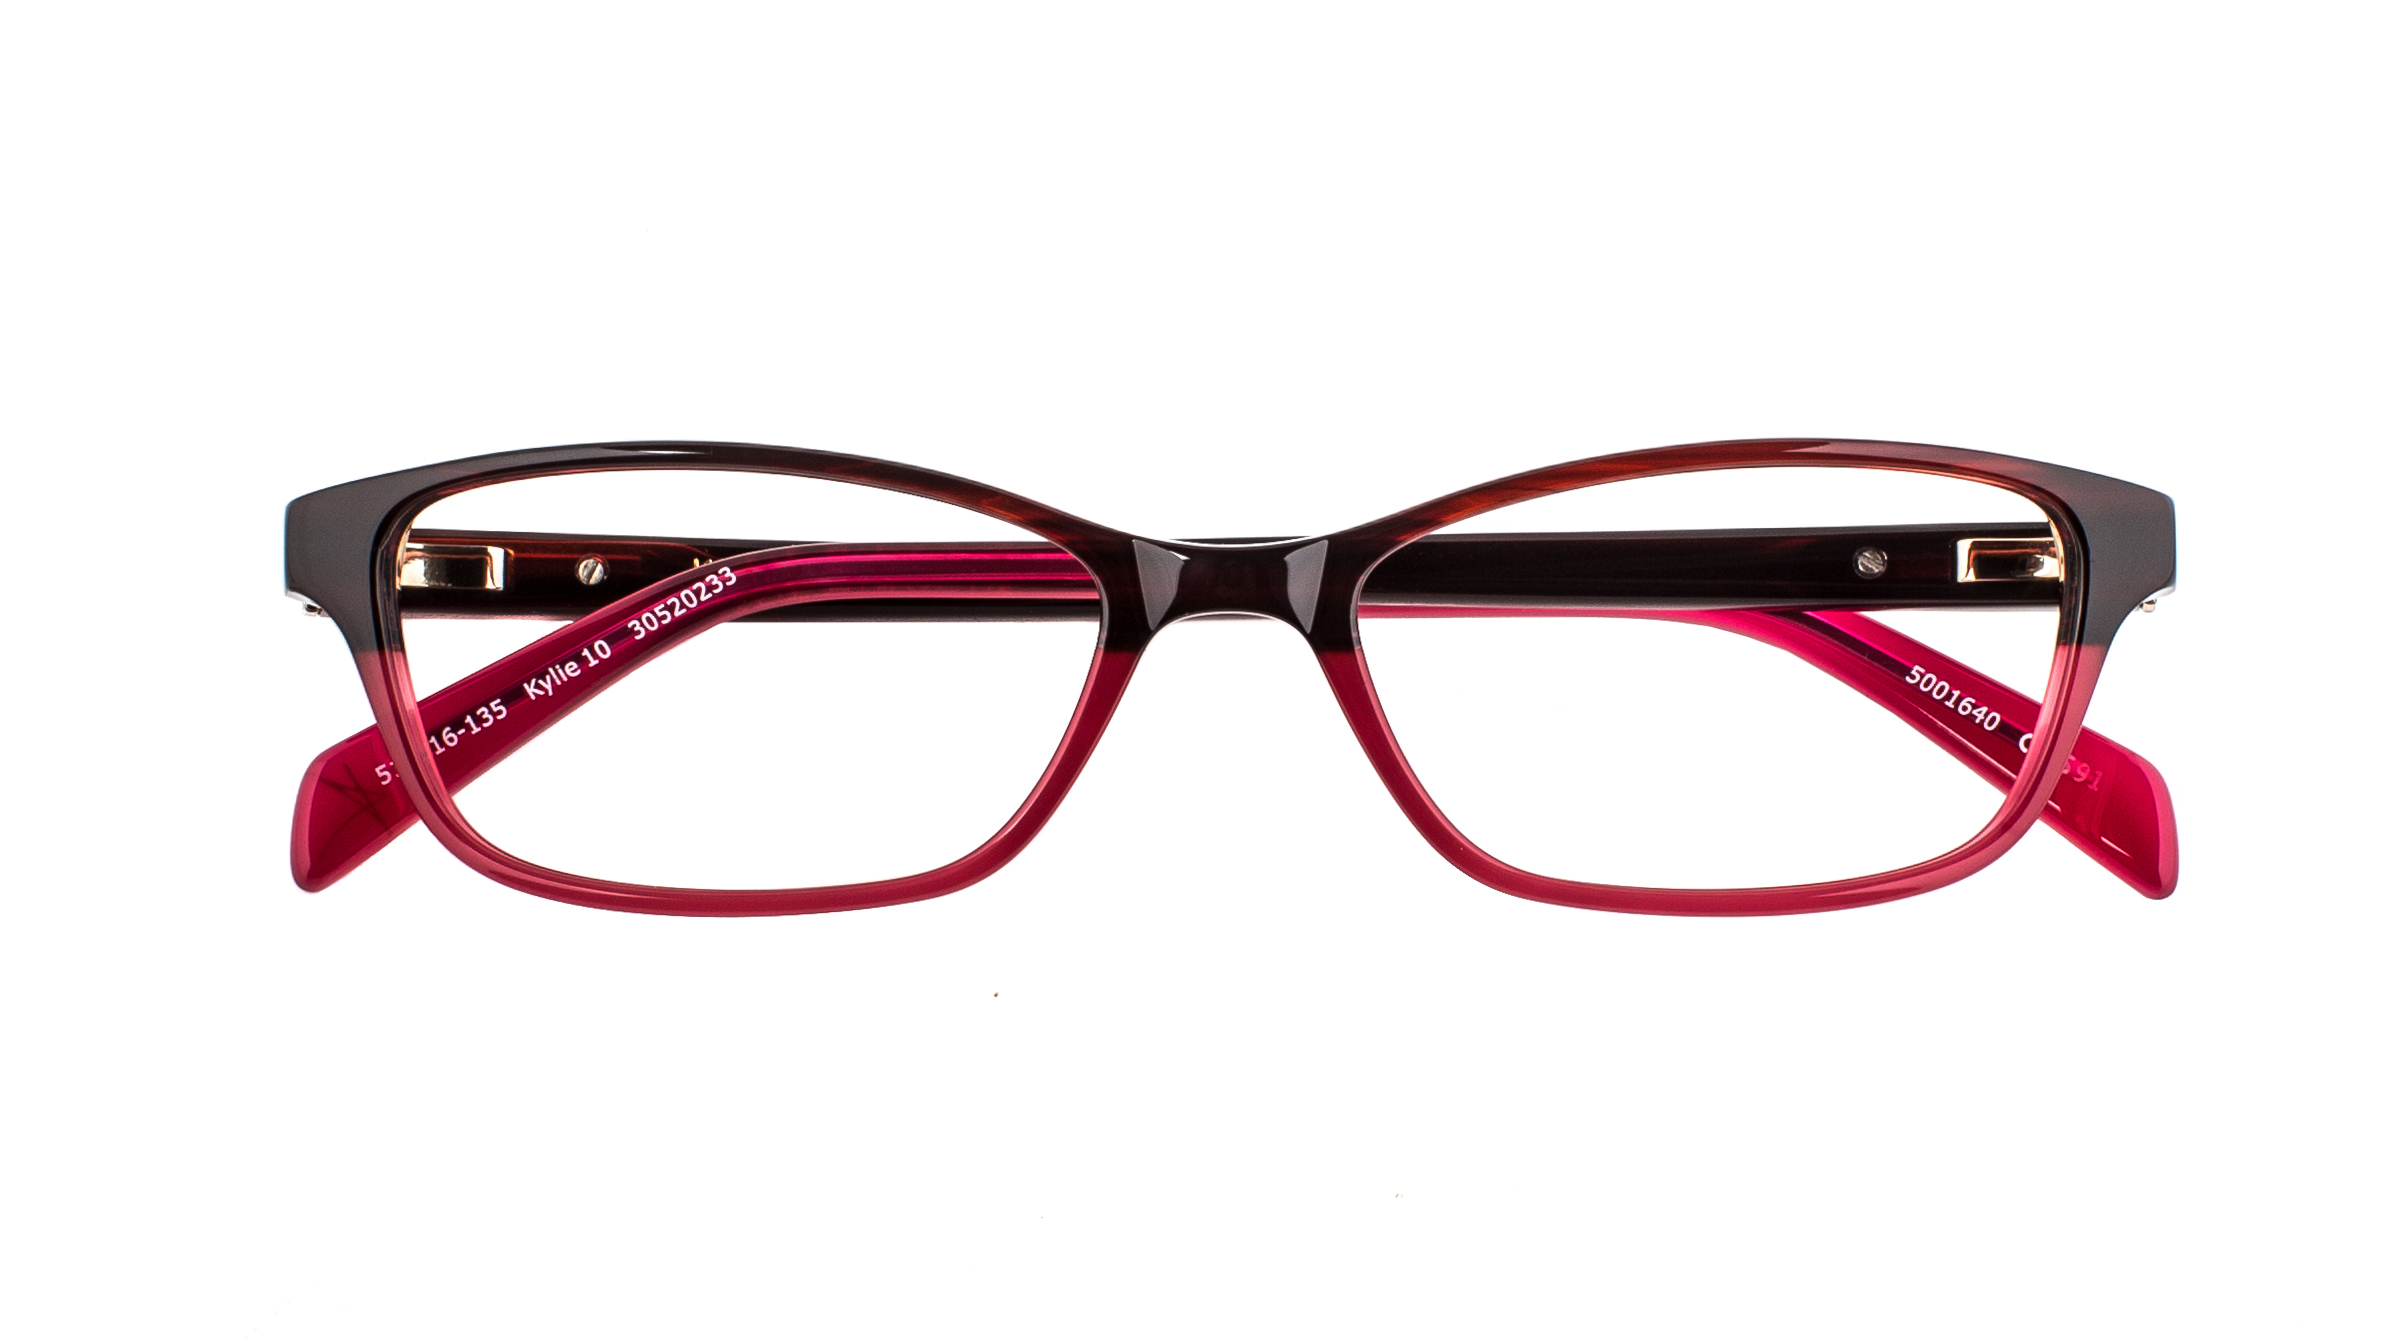 Kylie Minogue Eyewear_Kylie 10_SKU 30520233_RRP 2 pairs from $369